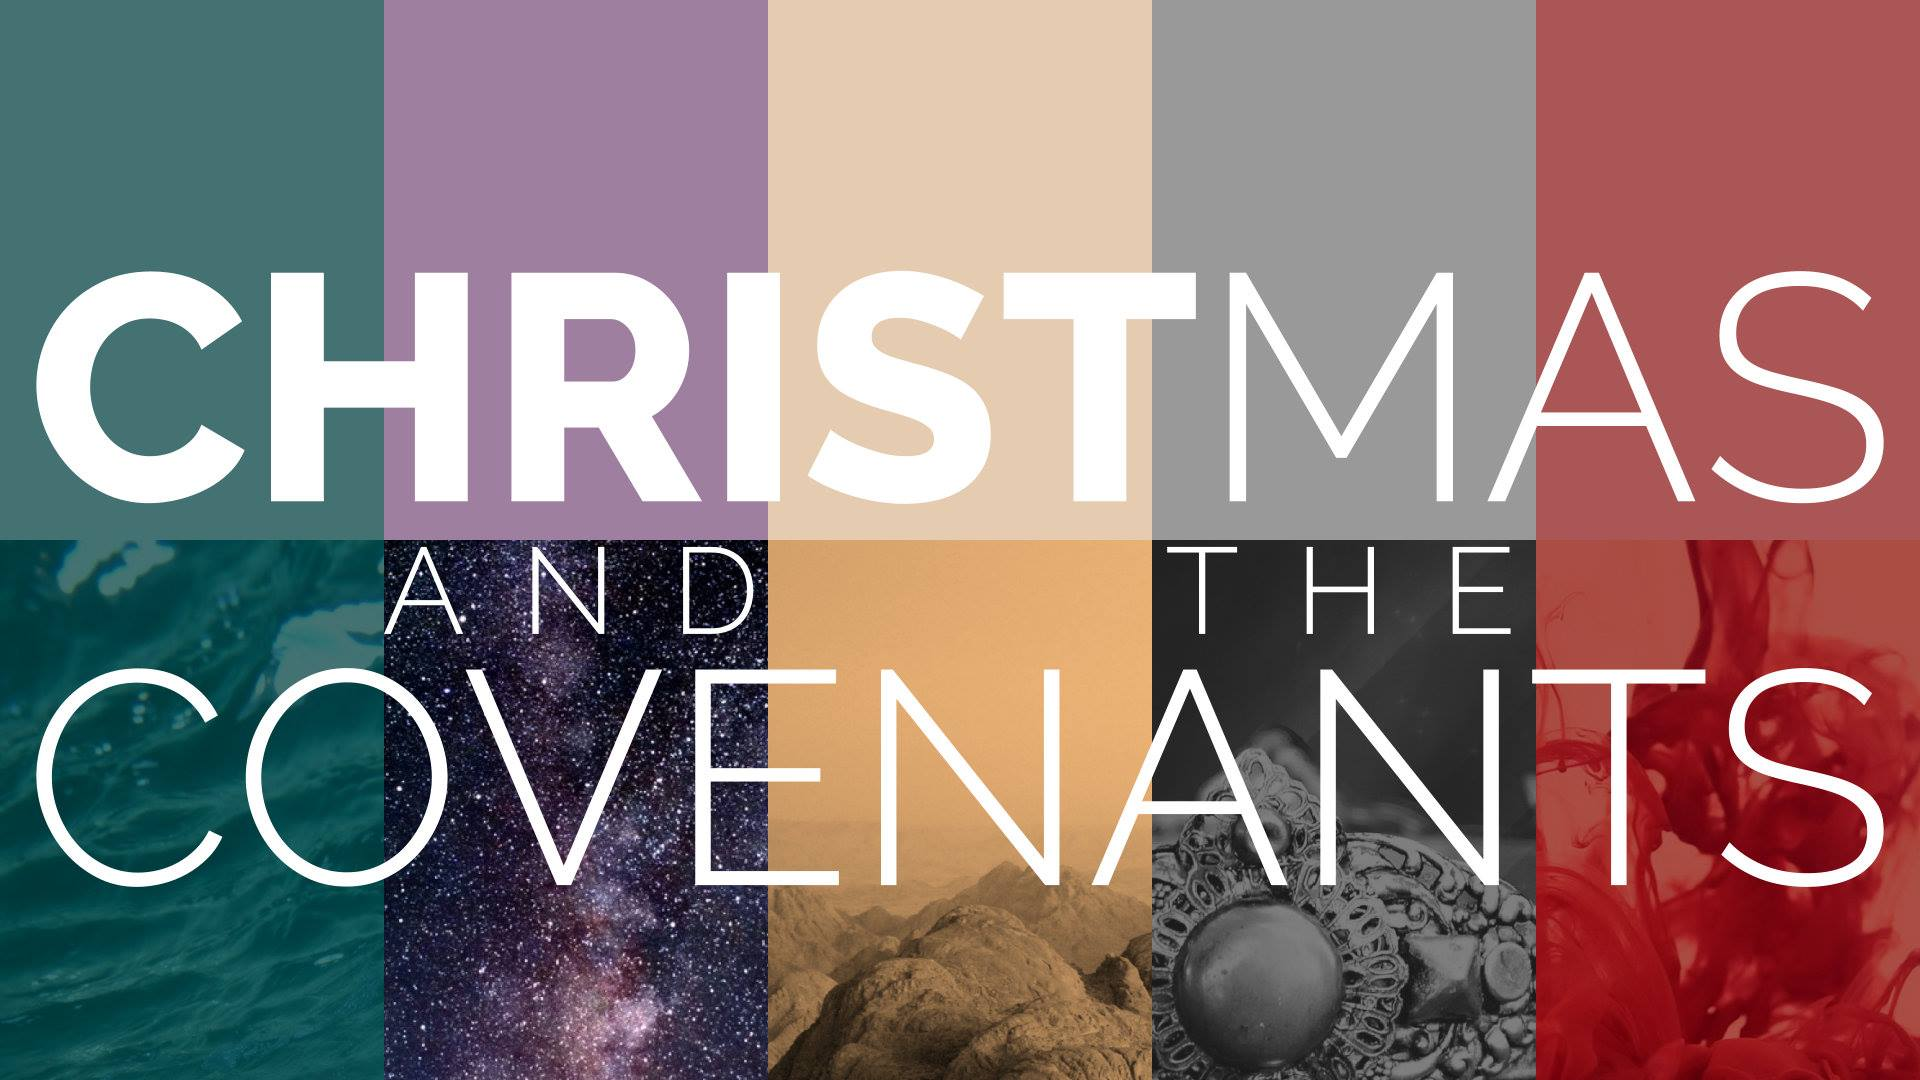 Christmas and The Davidic Covenant